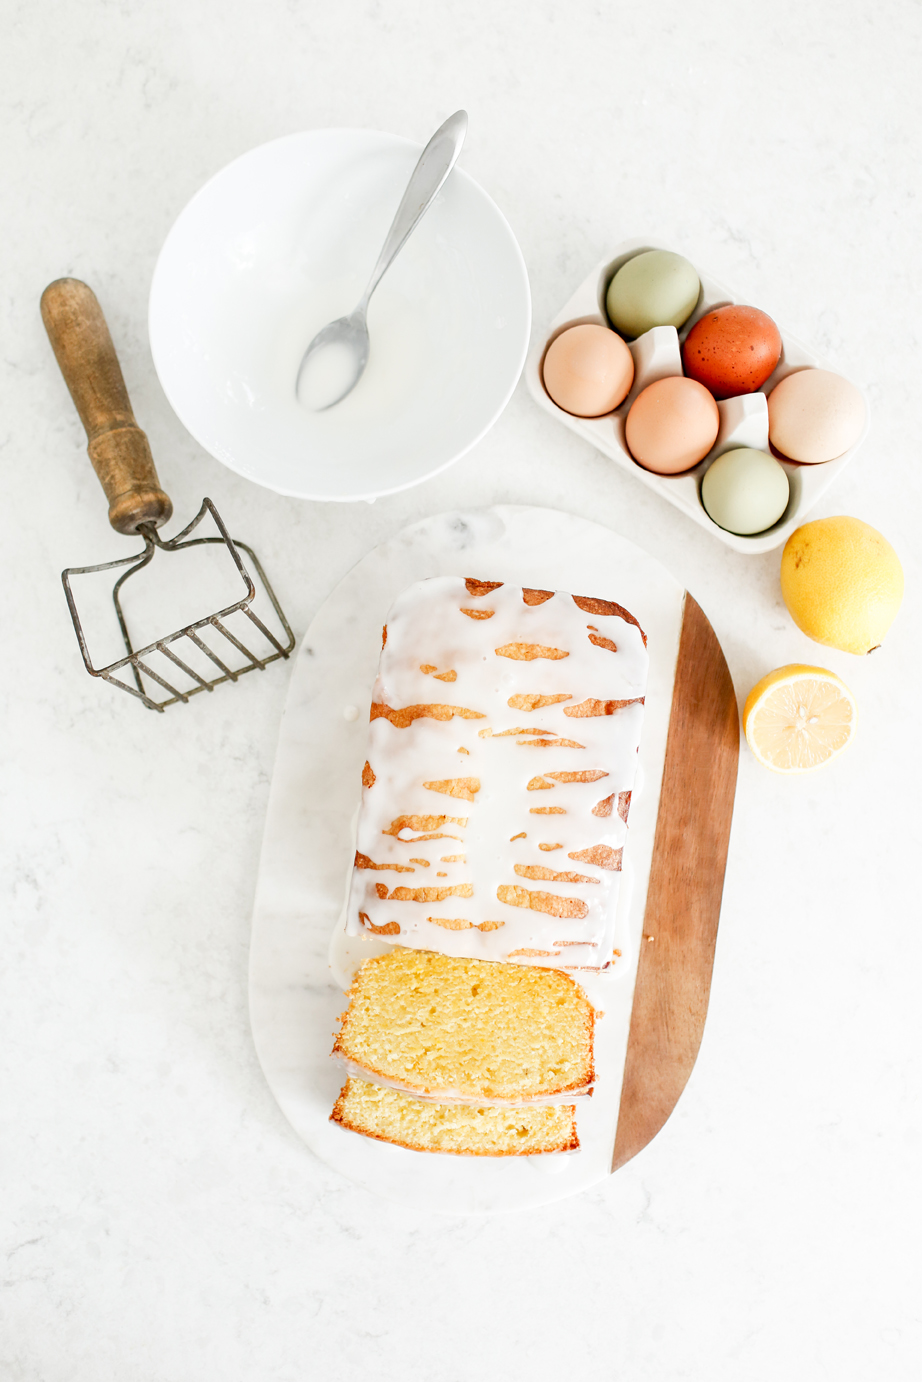 egg yolk pound cake